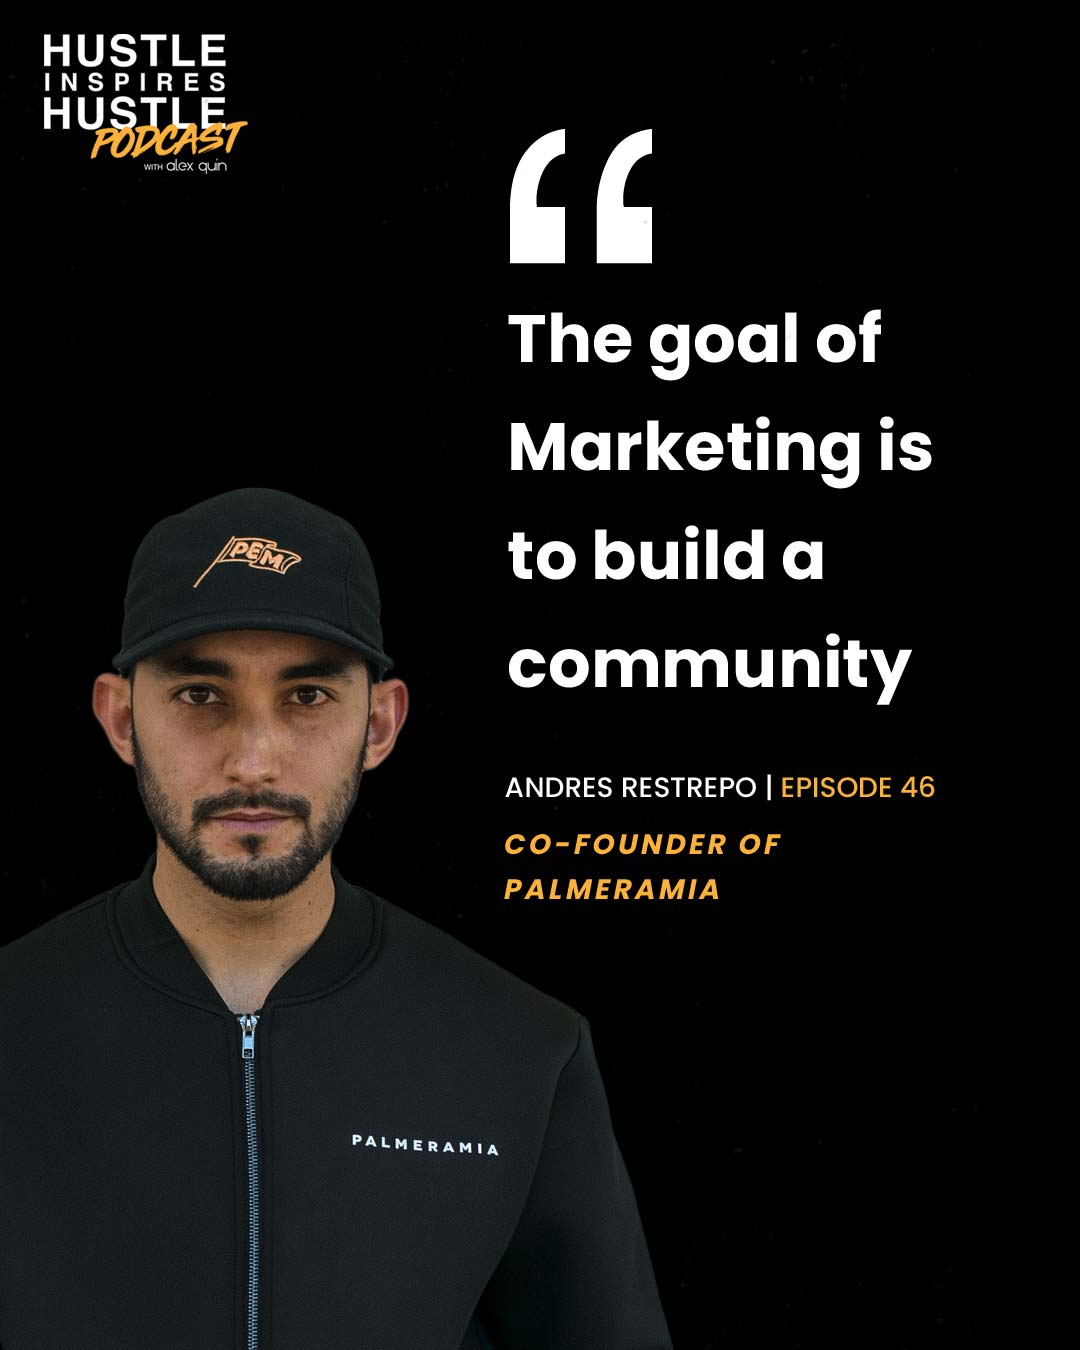 Andres Restrepo & Alex Quin Hustle Inspires Hustle Podcast